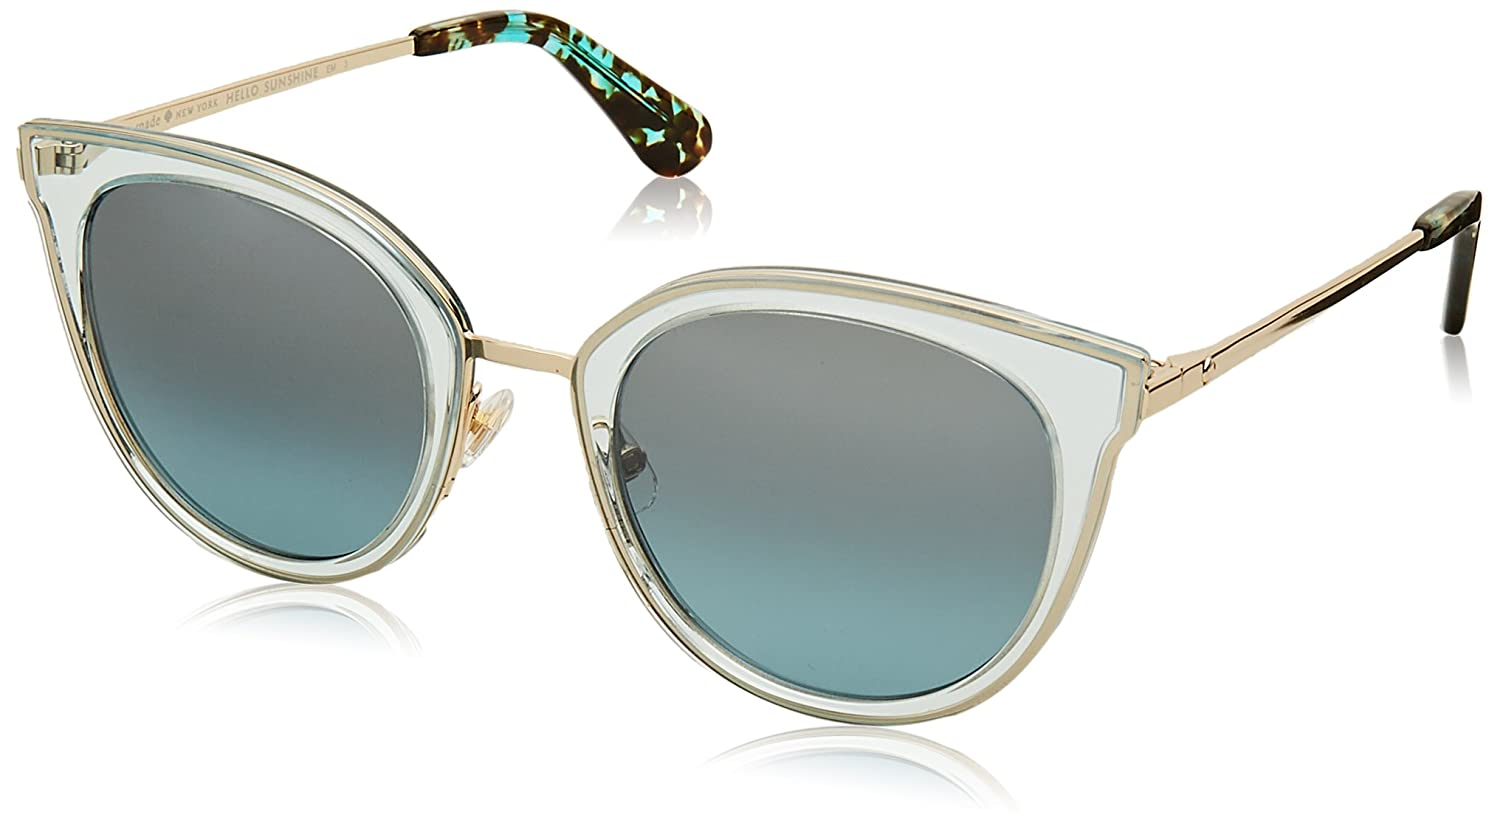 d08b436dce8 Amazon.com  Kate Spade Women s Jazzlyn s Round Sunglasses BLUE GOLD 51 mm   Clothing